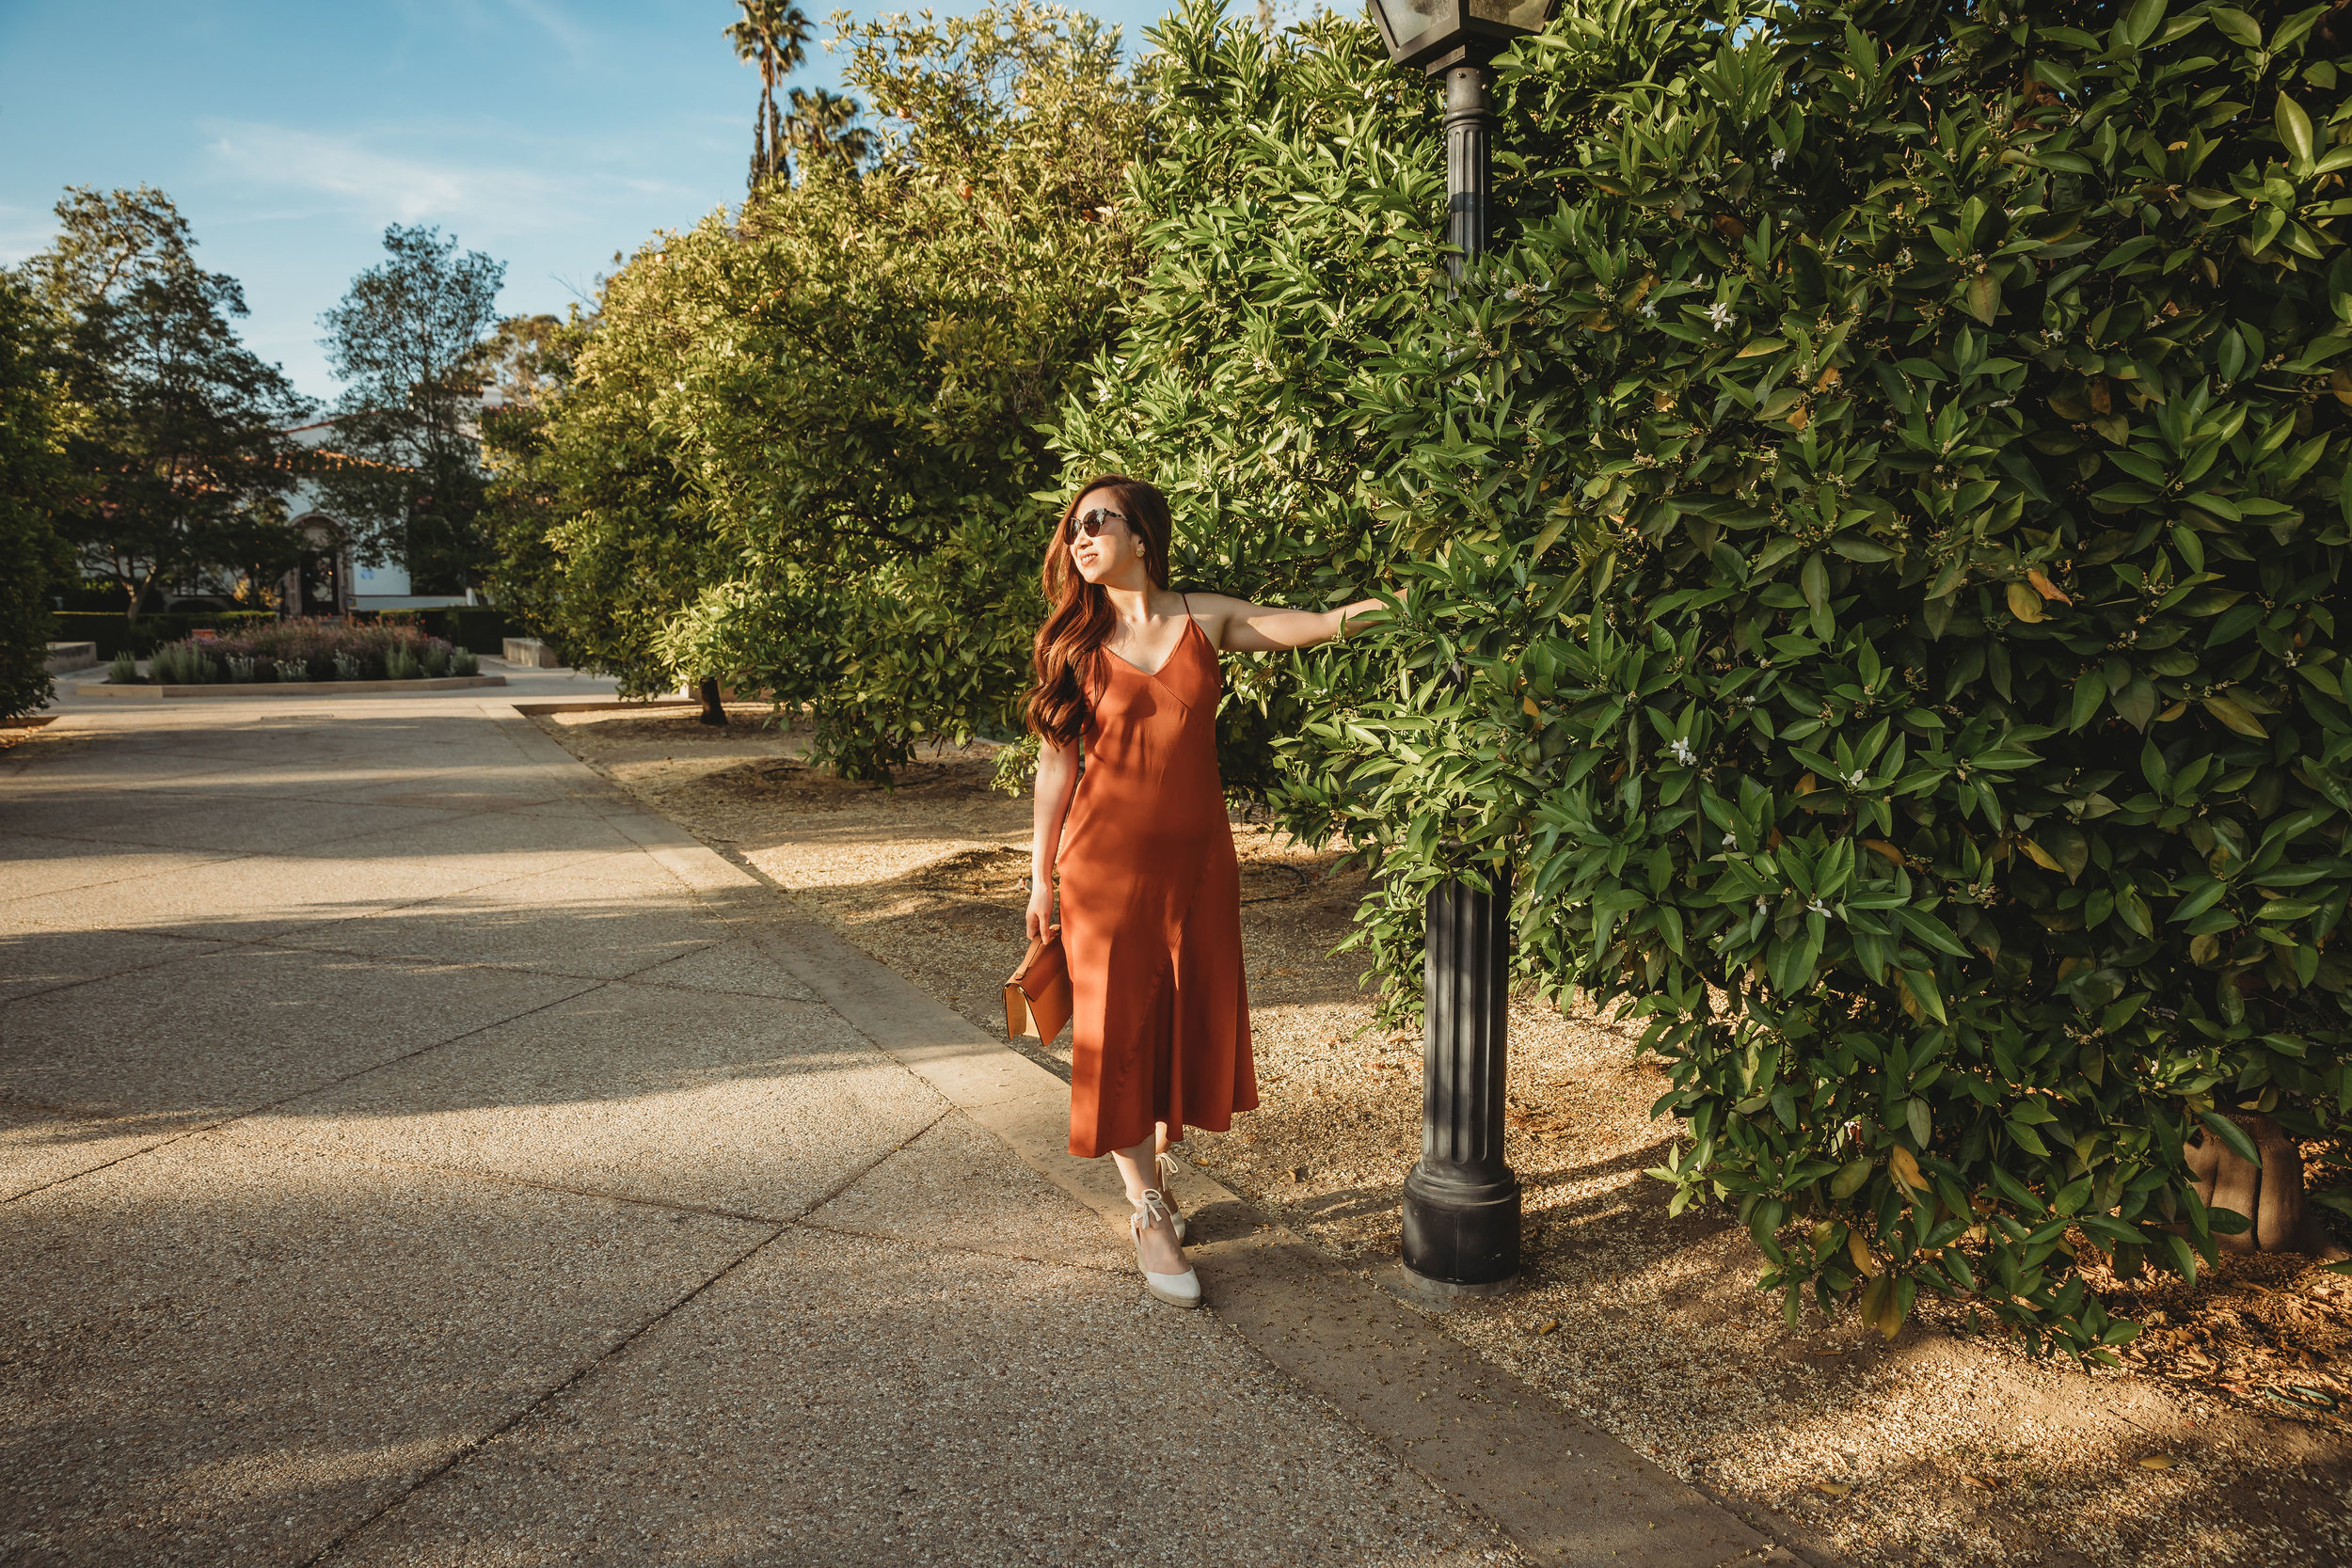 Wearing the dress as it is exploring the college campuses in Claremont, California. Photo by  Rebecca Zeller .